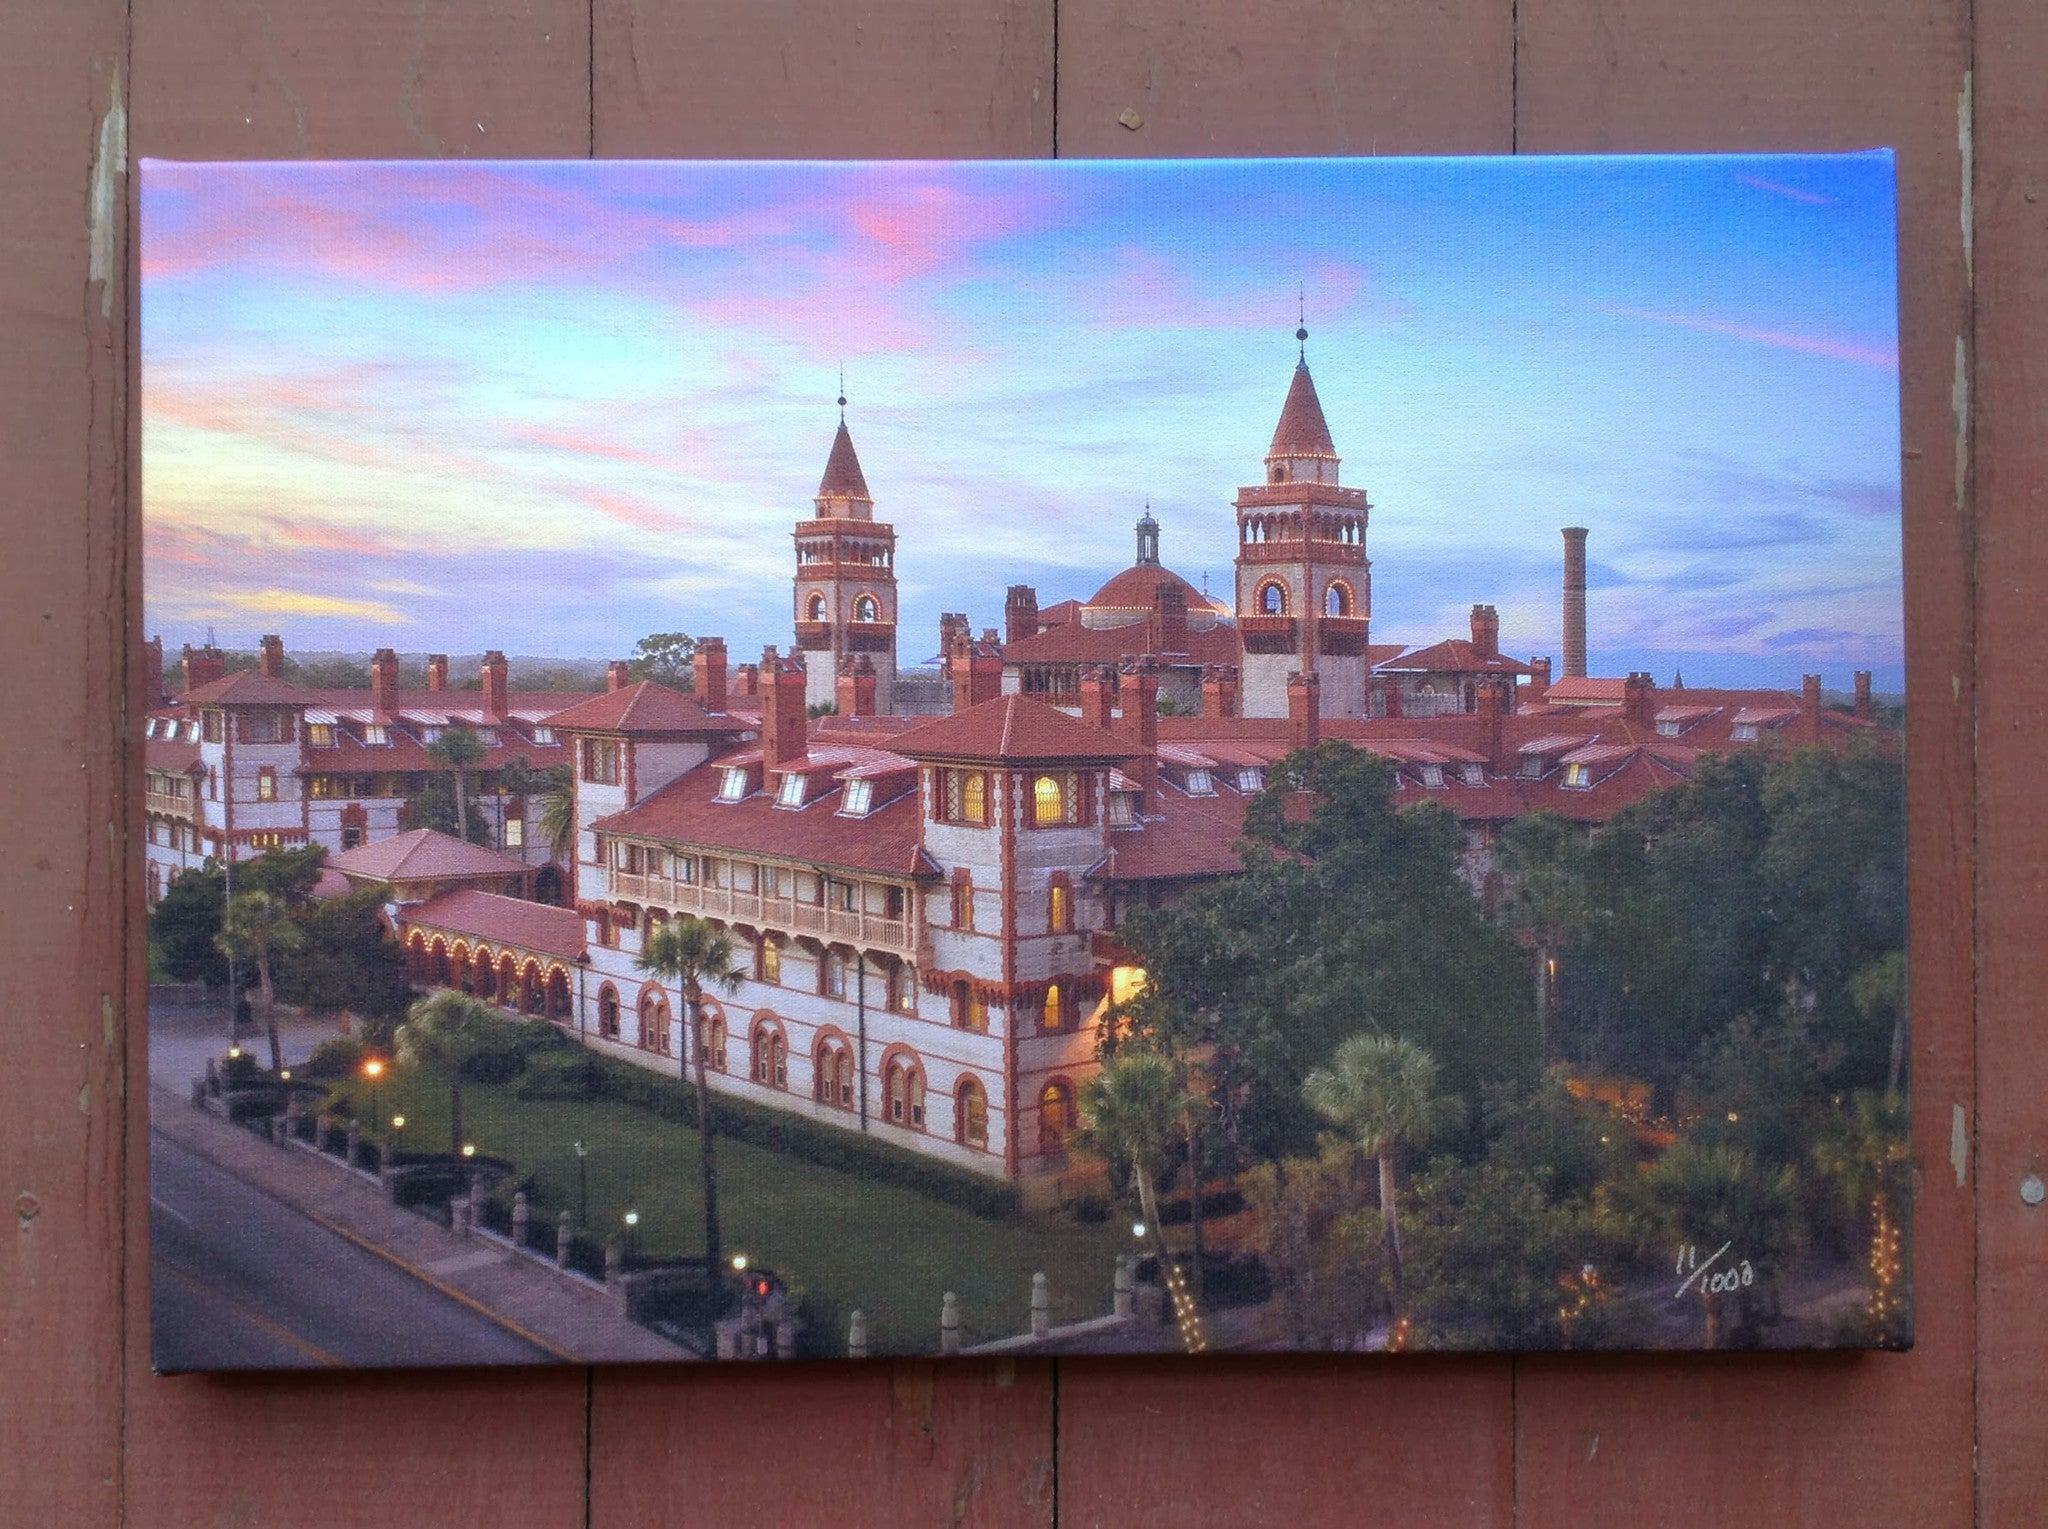 Flagler college pictured at sunset on a canvas.